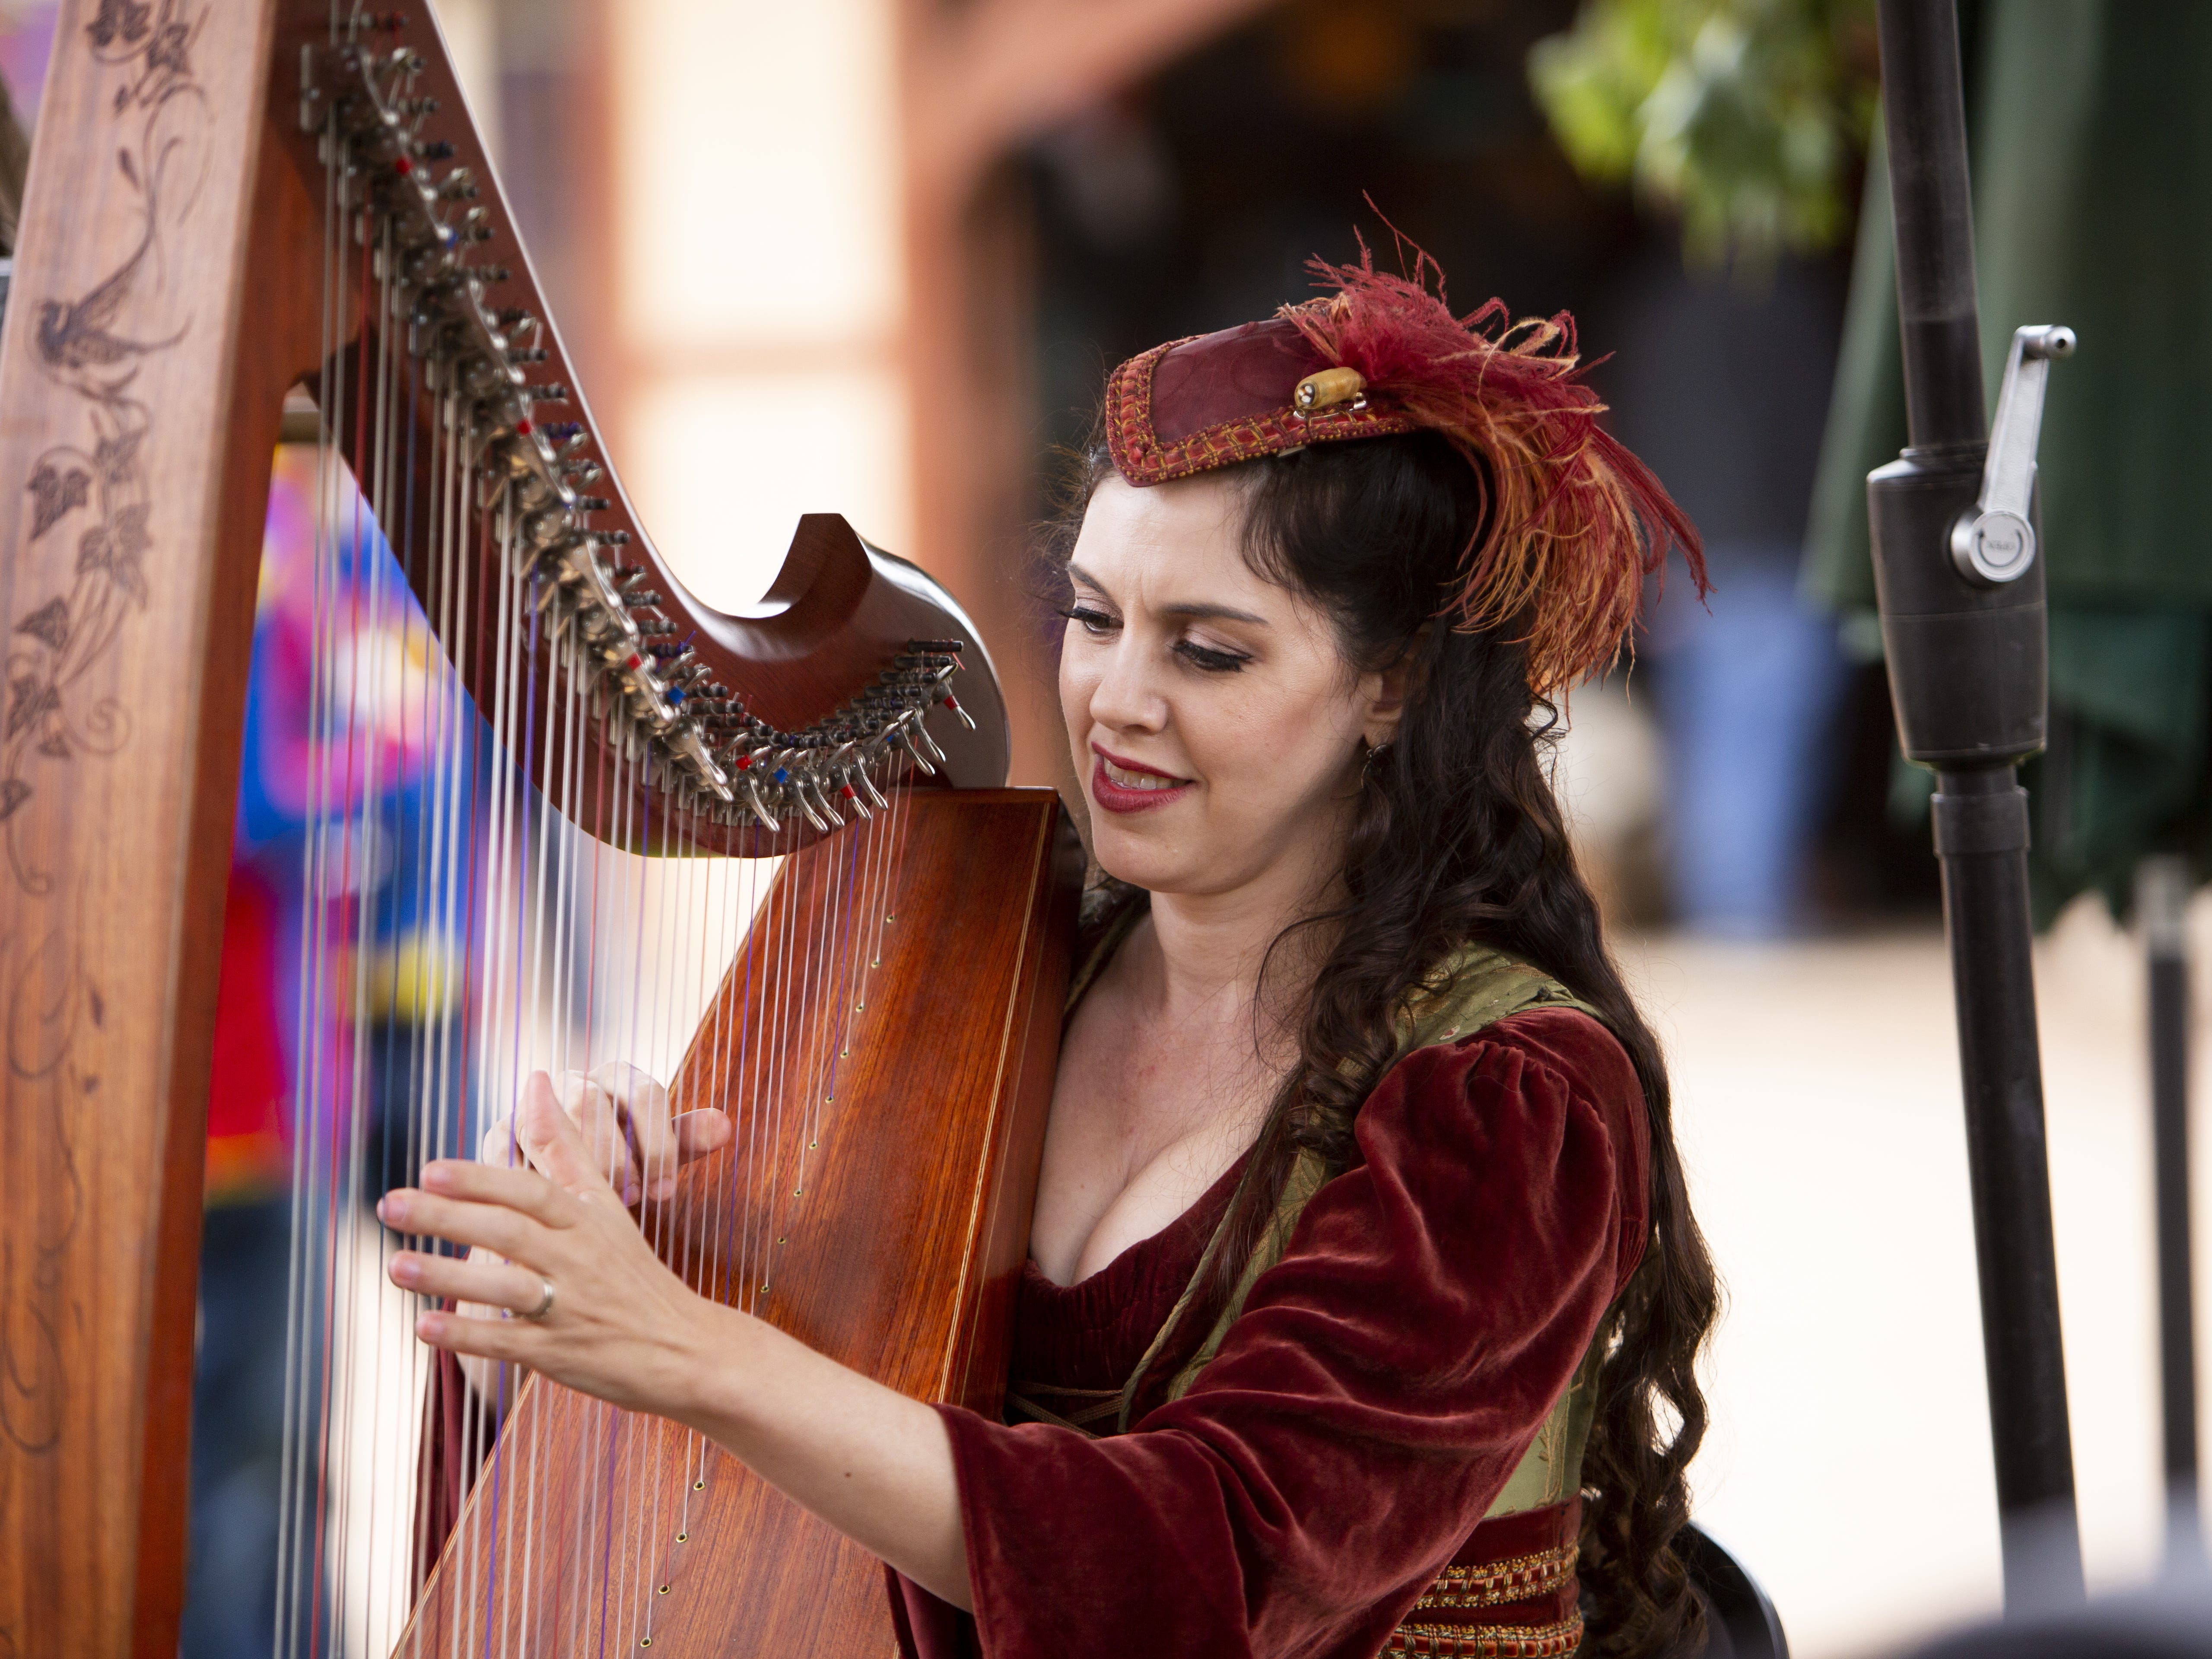 Sarah Marie Mullen plays the harp at the Arizona Renaissance Festival 2019 on Feb. 9, 2019 in Gold Canyon, Ariz.